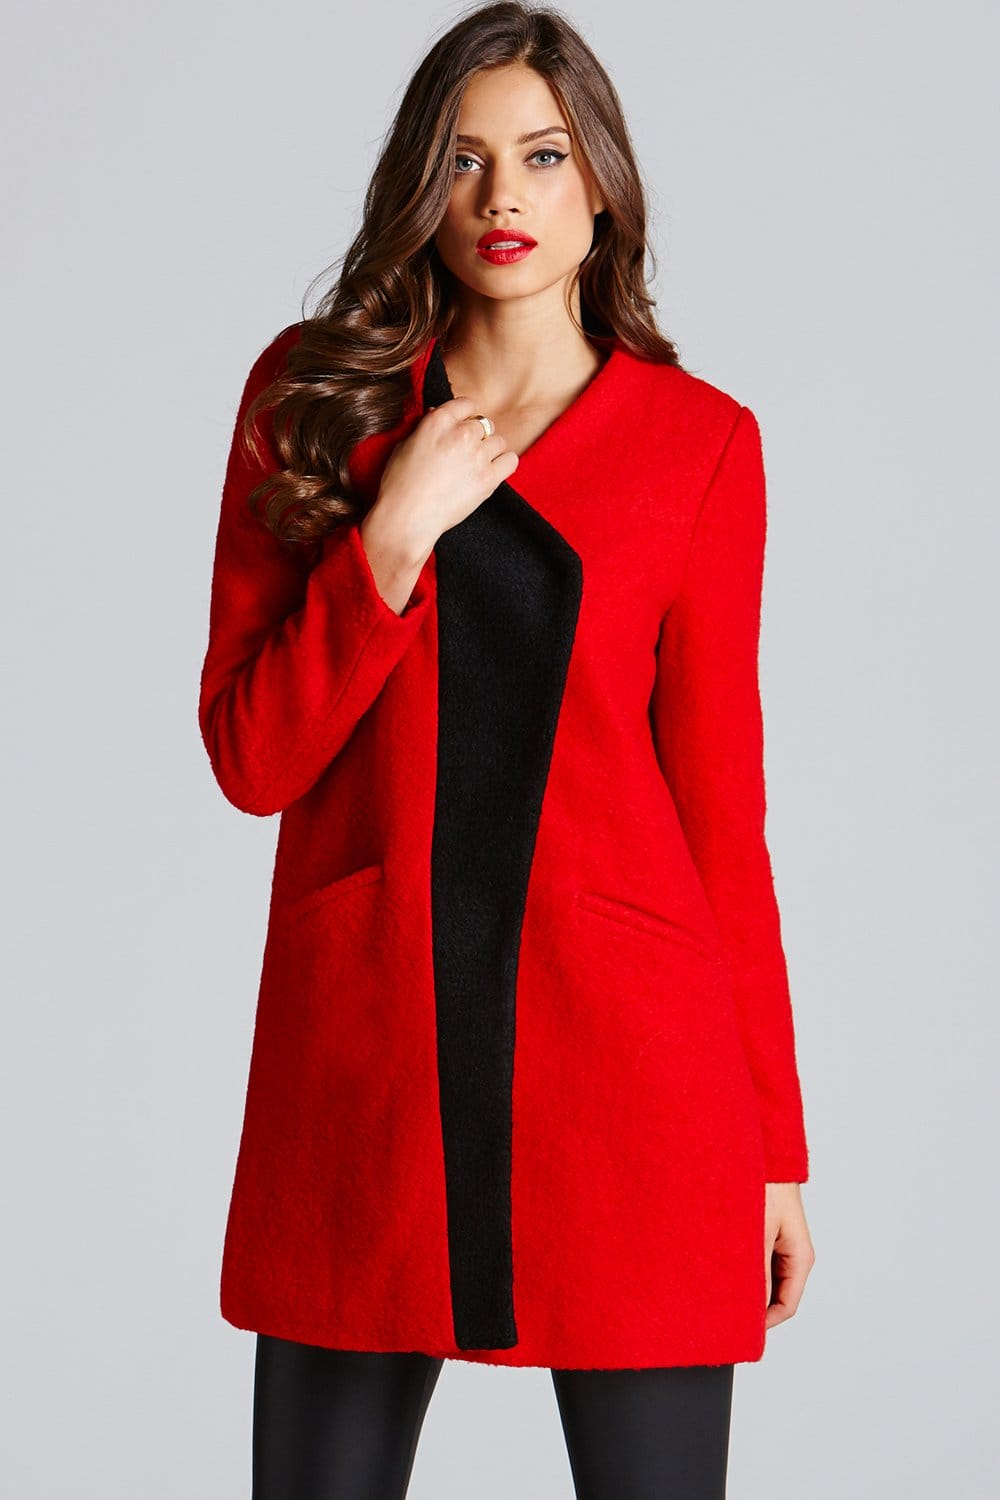 Little Mistress Red Contrast Lapel Wool Coat - Little Mistress ...